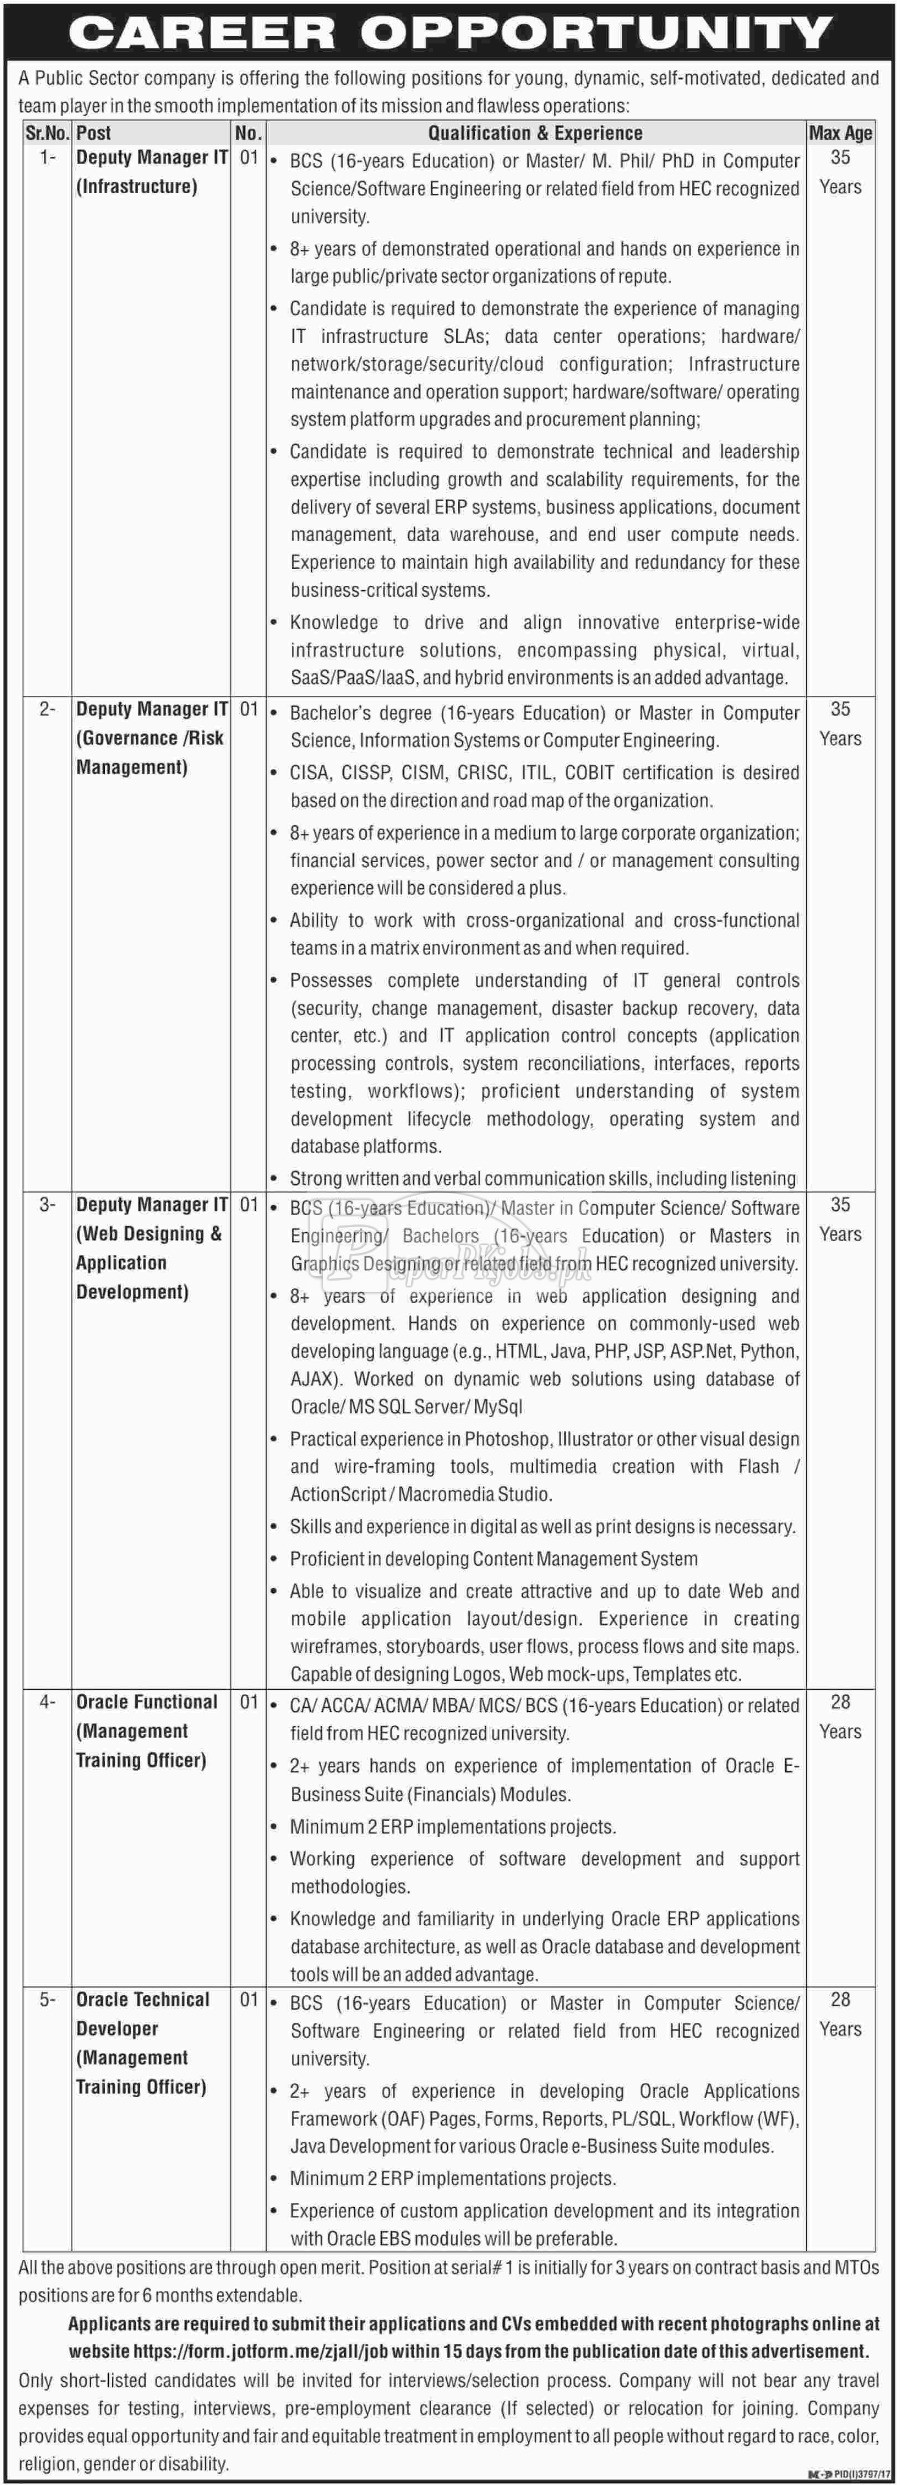 Public Sector Organization Jobs 2018